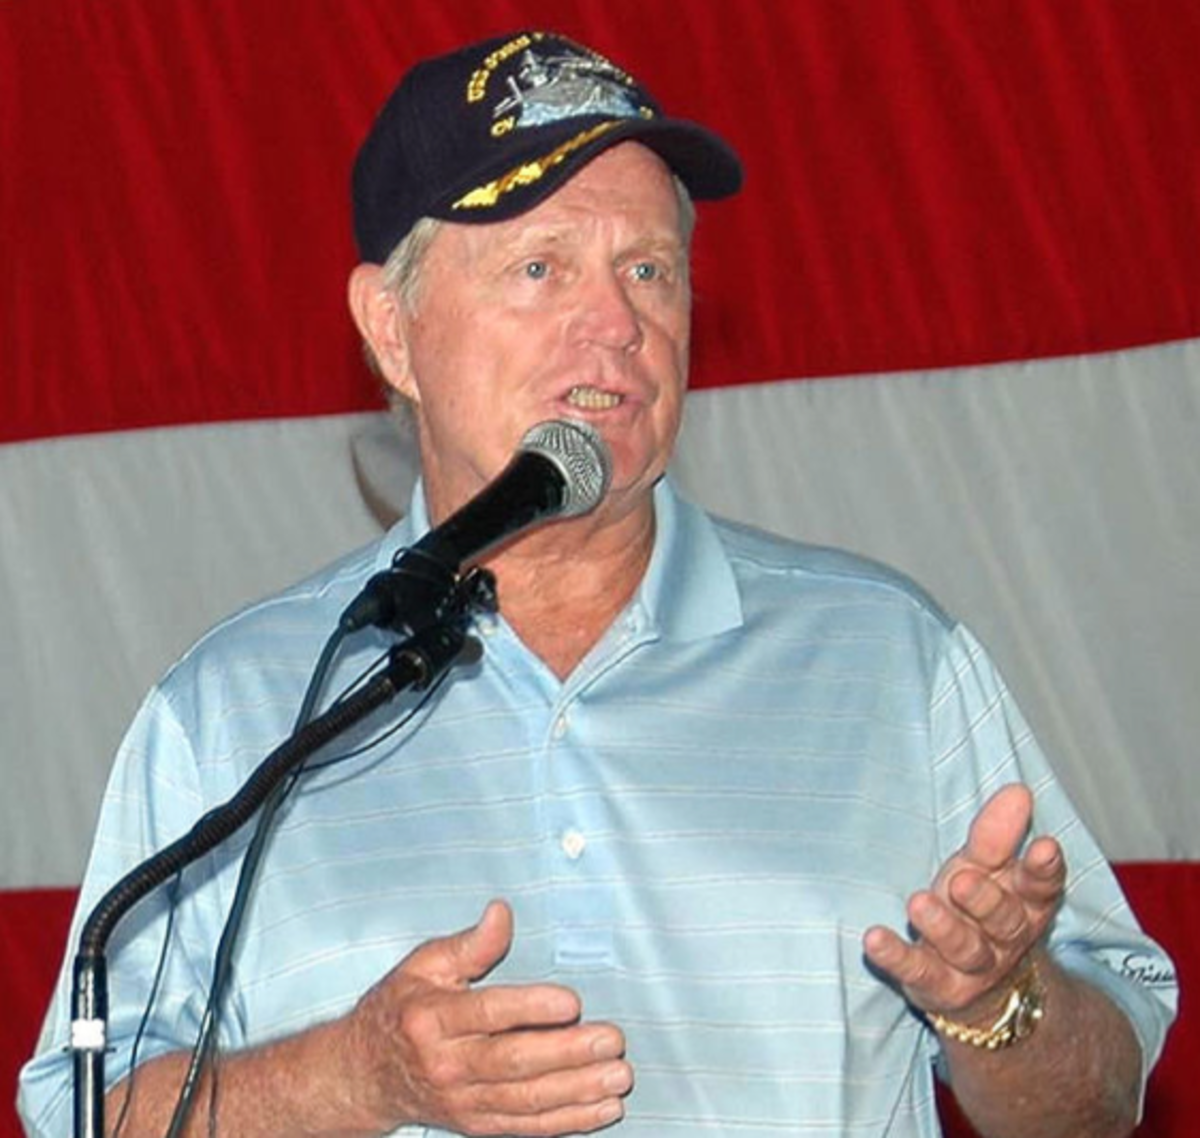 Jack Nicklaus, famous golfer from the United States who used the Egoscue Method.